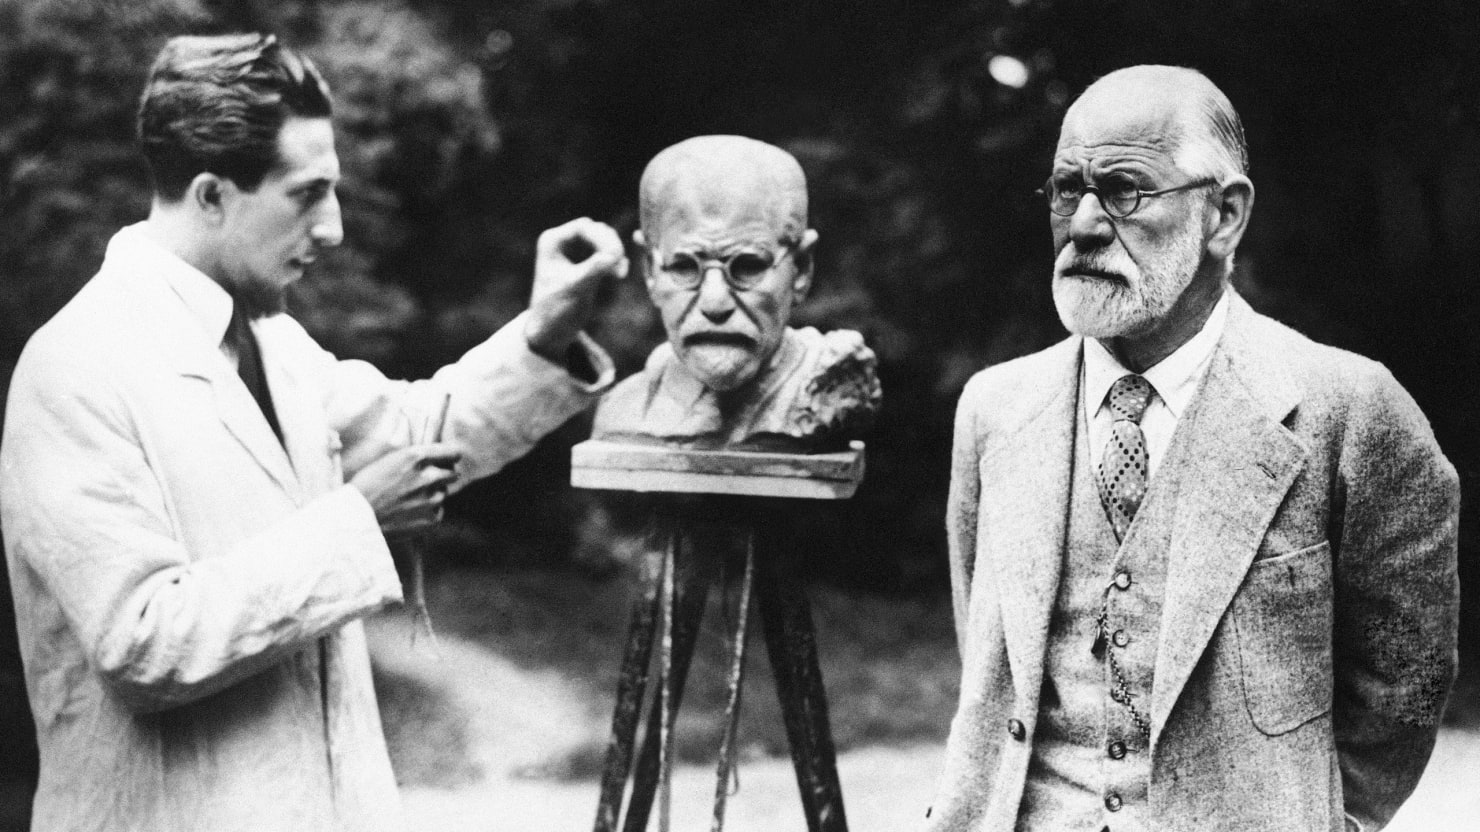 Psychoanalysis as Literature: Stephen Grosz's 'The Examined Life'